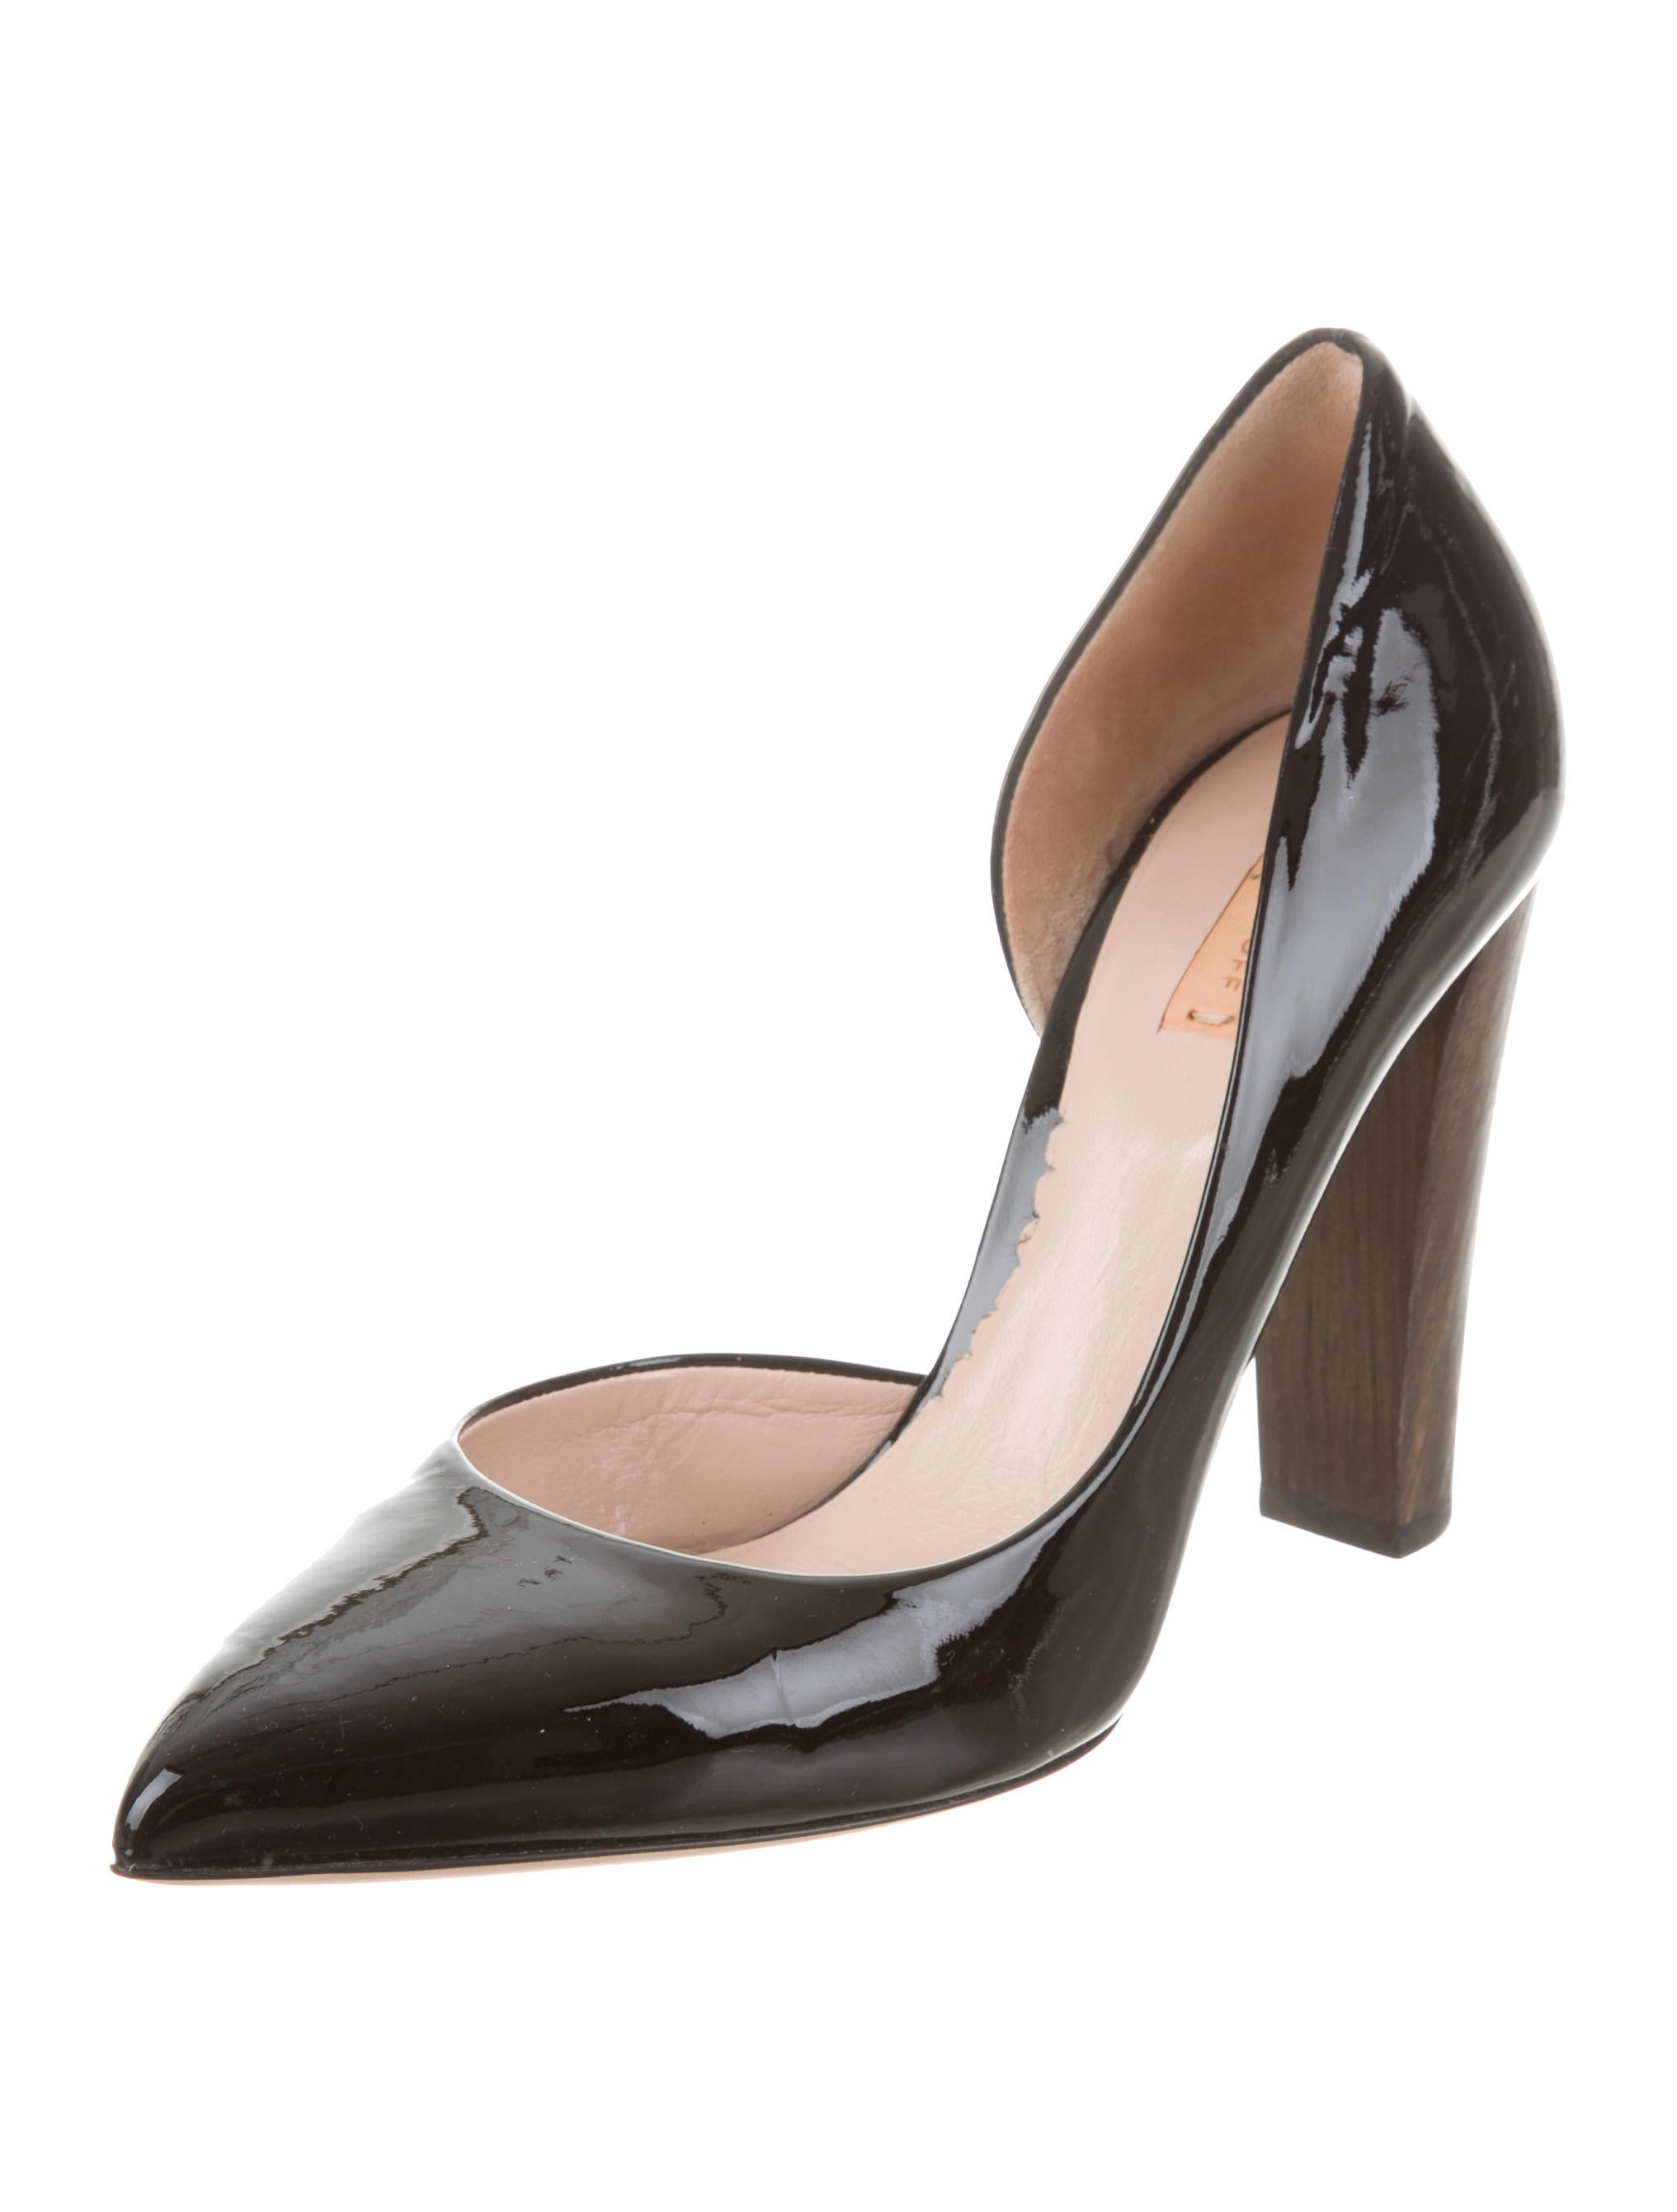 Reed Krakoff Leather Pointed-Toe Pumps